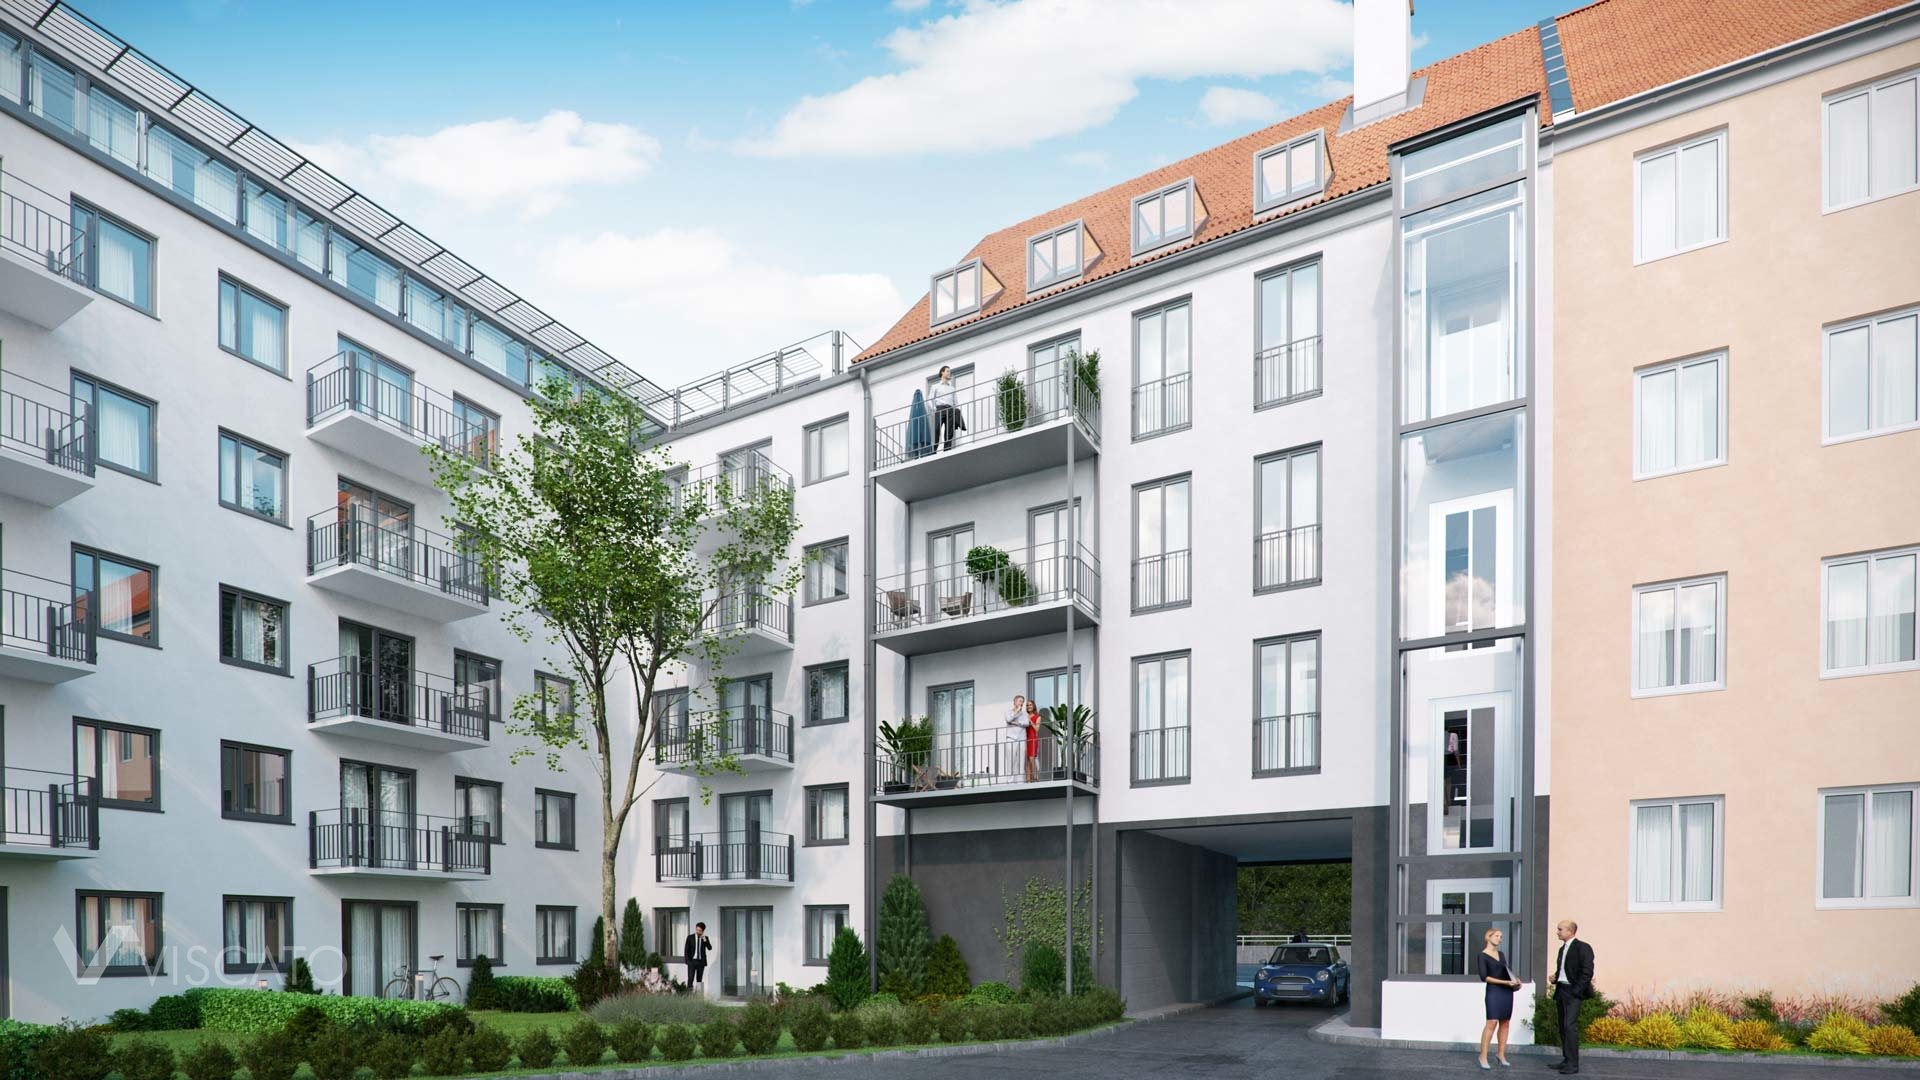 3d visualization of a residential building in Munich- backyard view